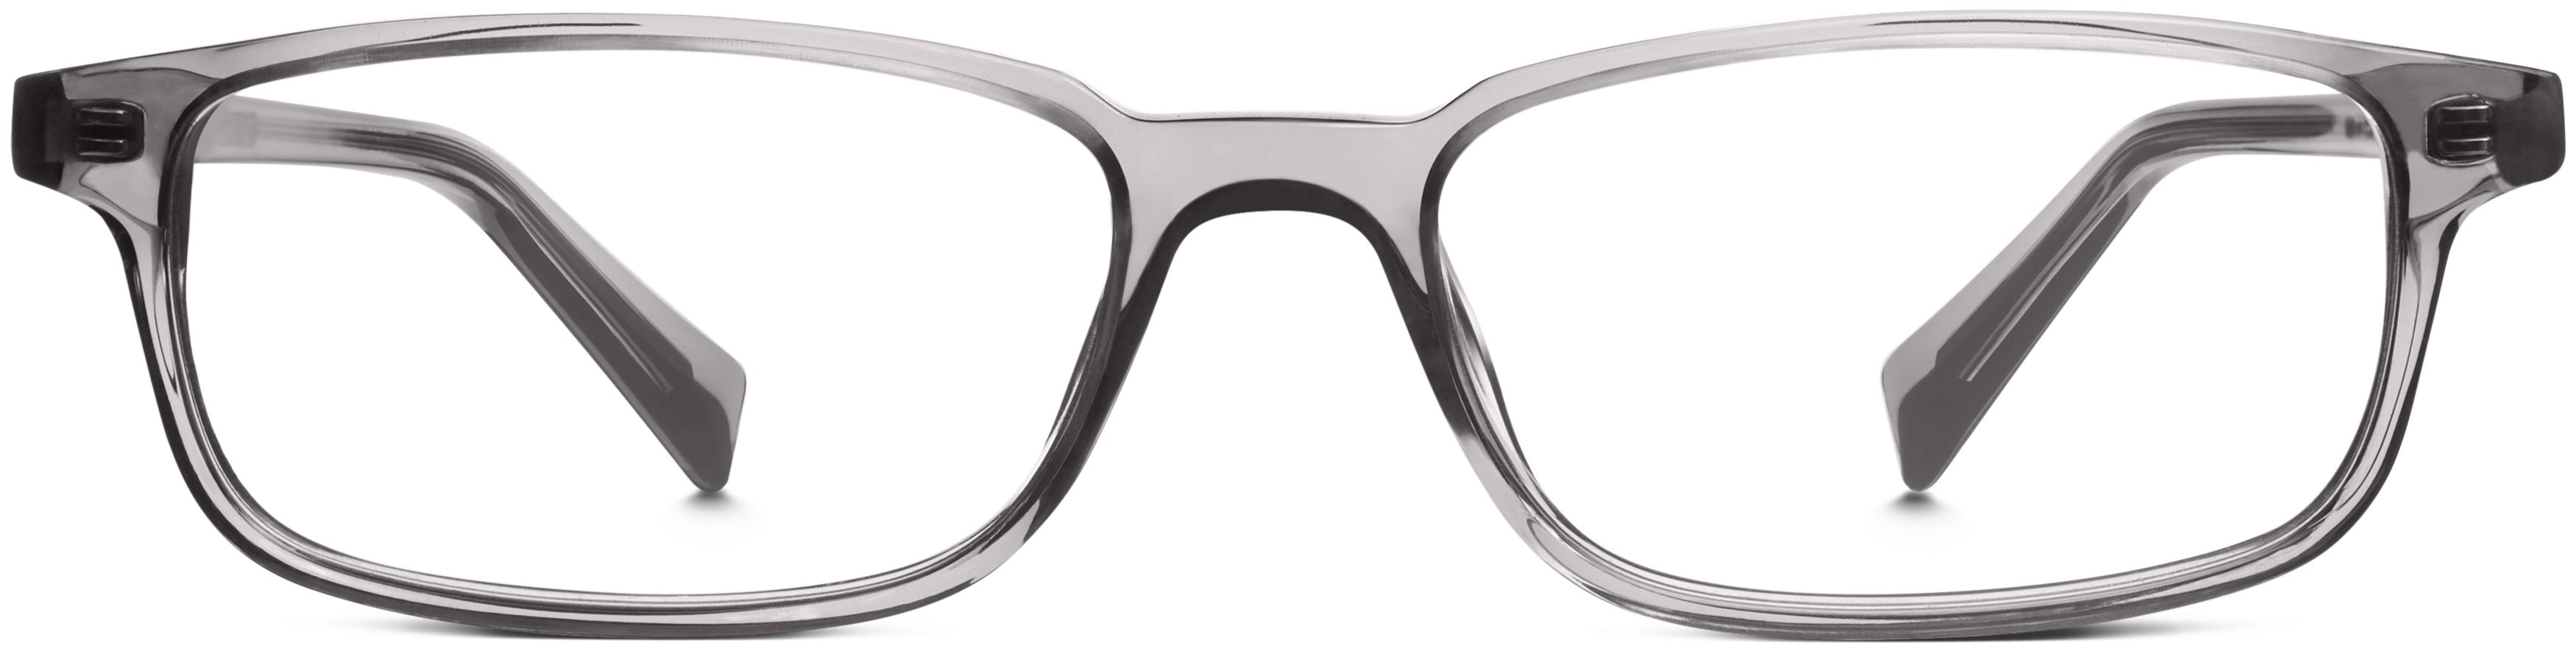 9c5446d50a Women s Eyeglasses